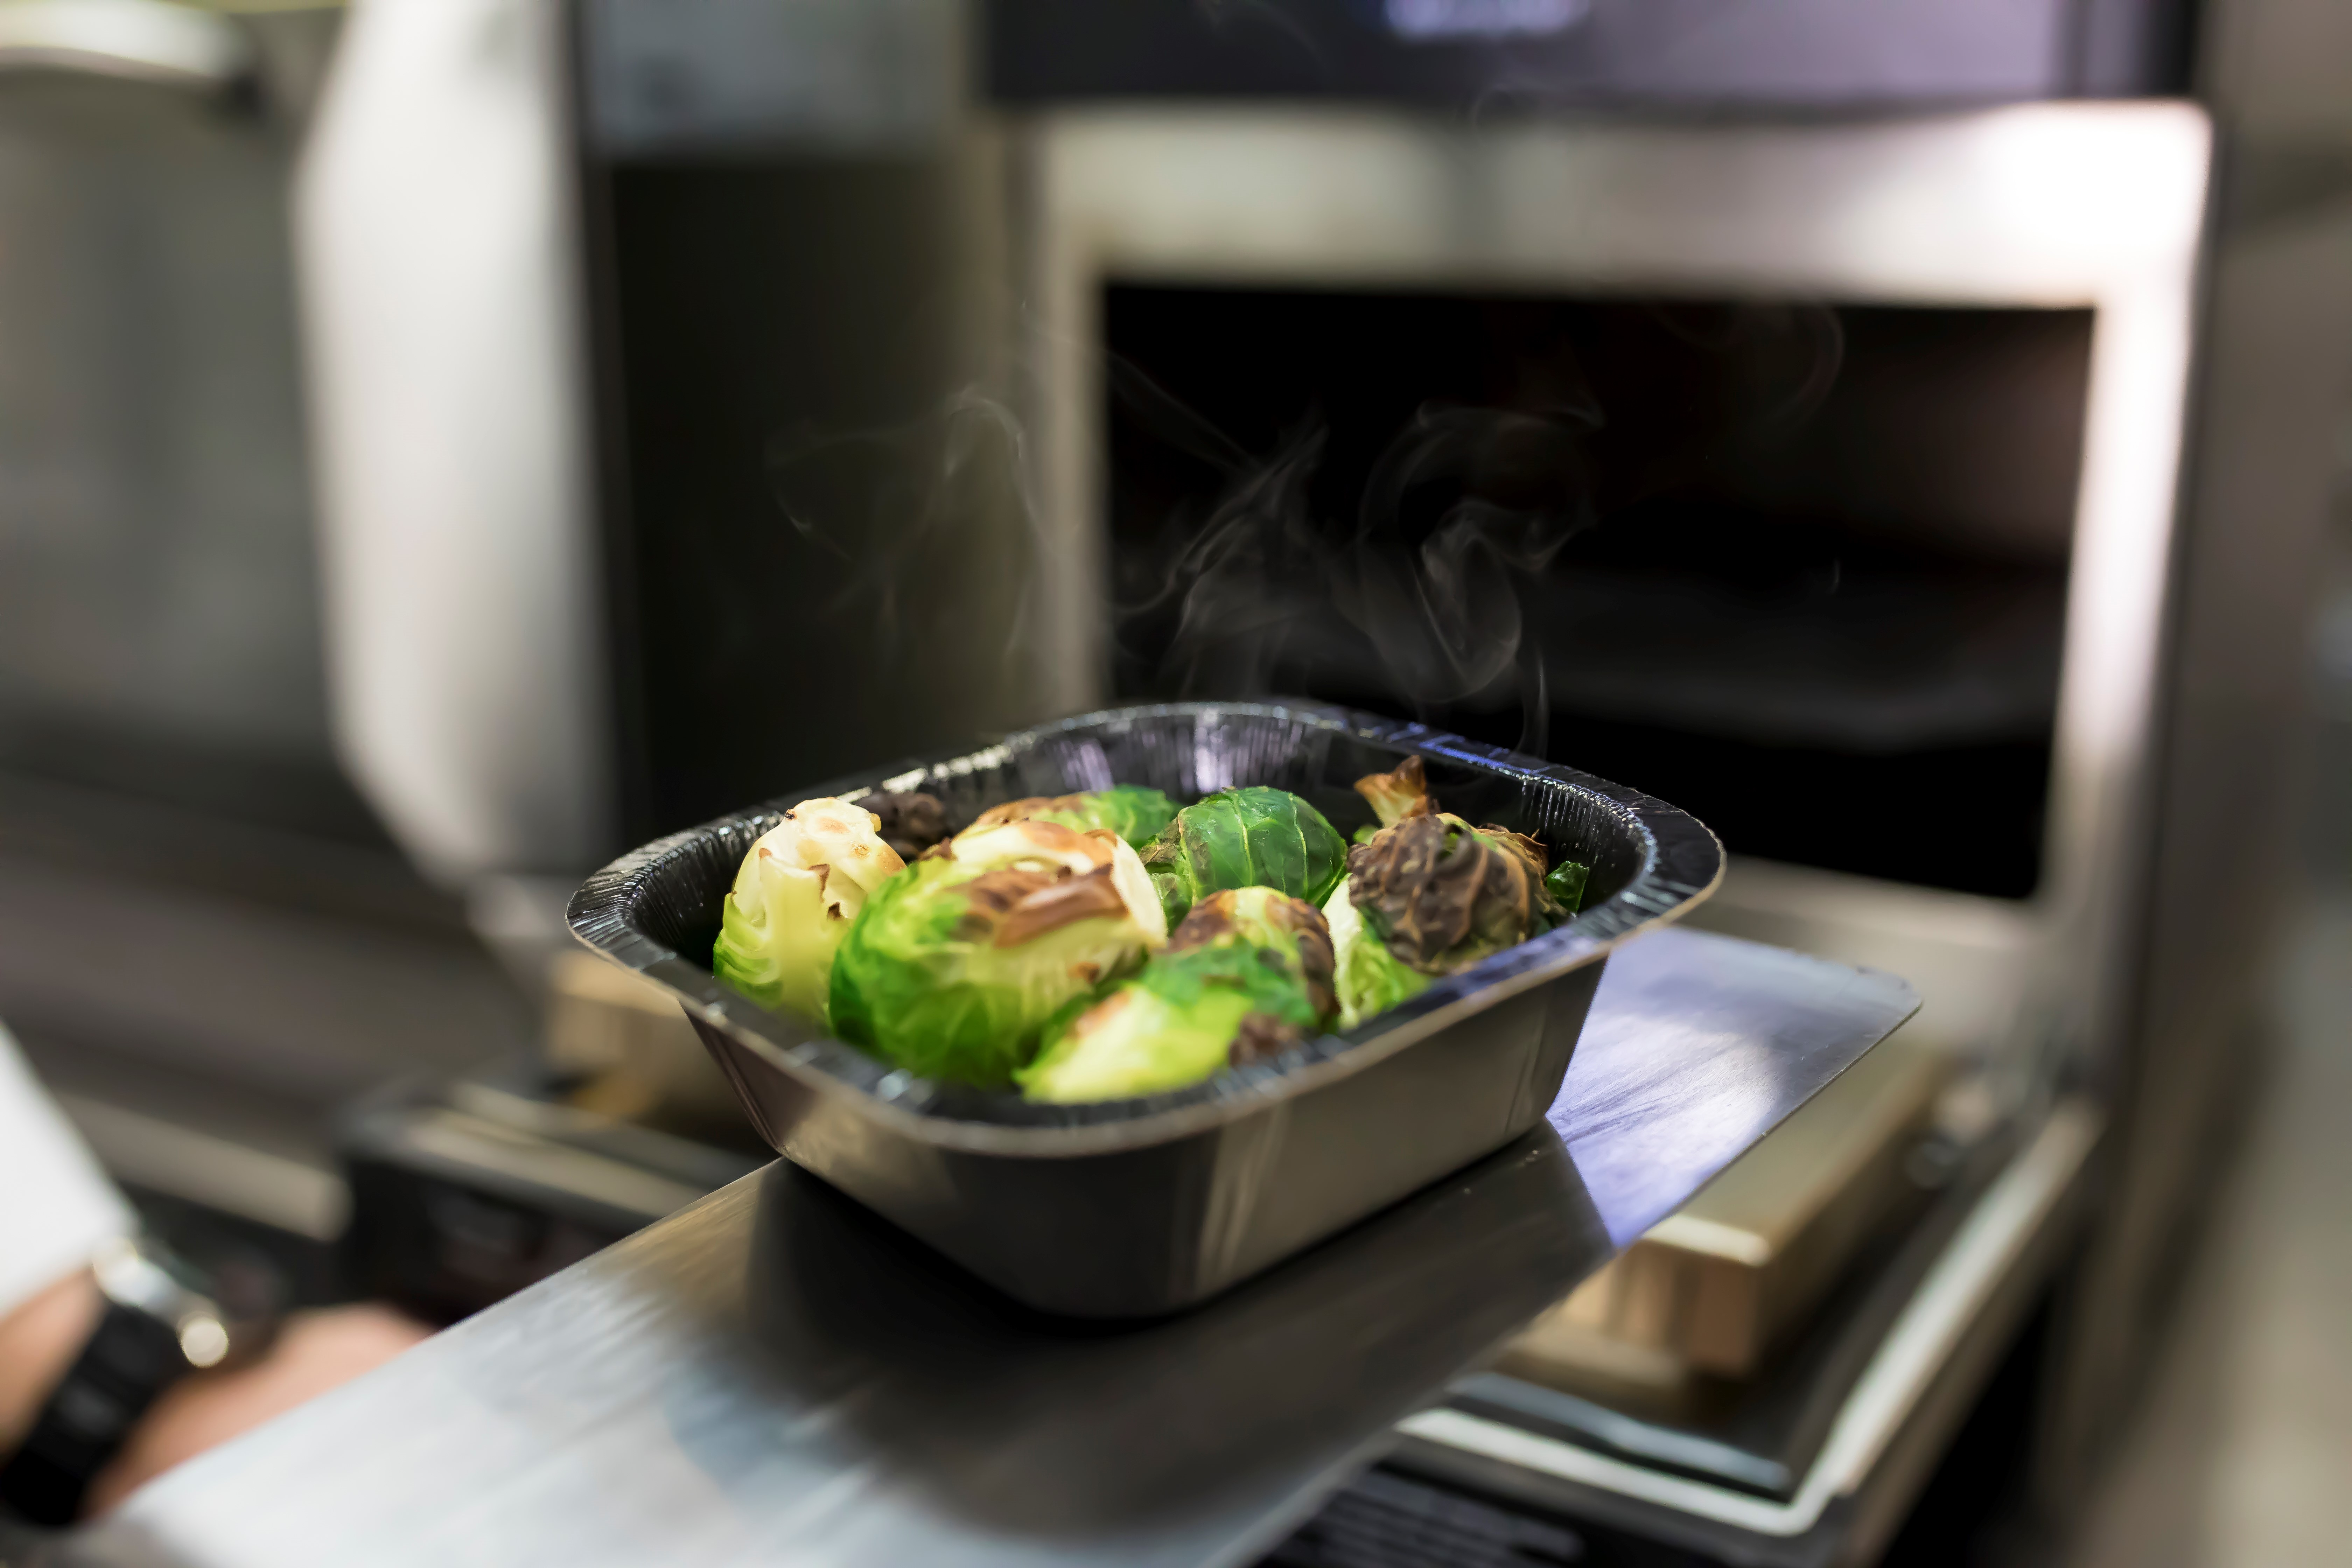 Accelerated Cooking Packaging Breakthrough: Fill, Cook and Serve